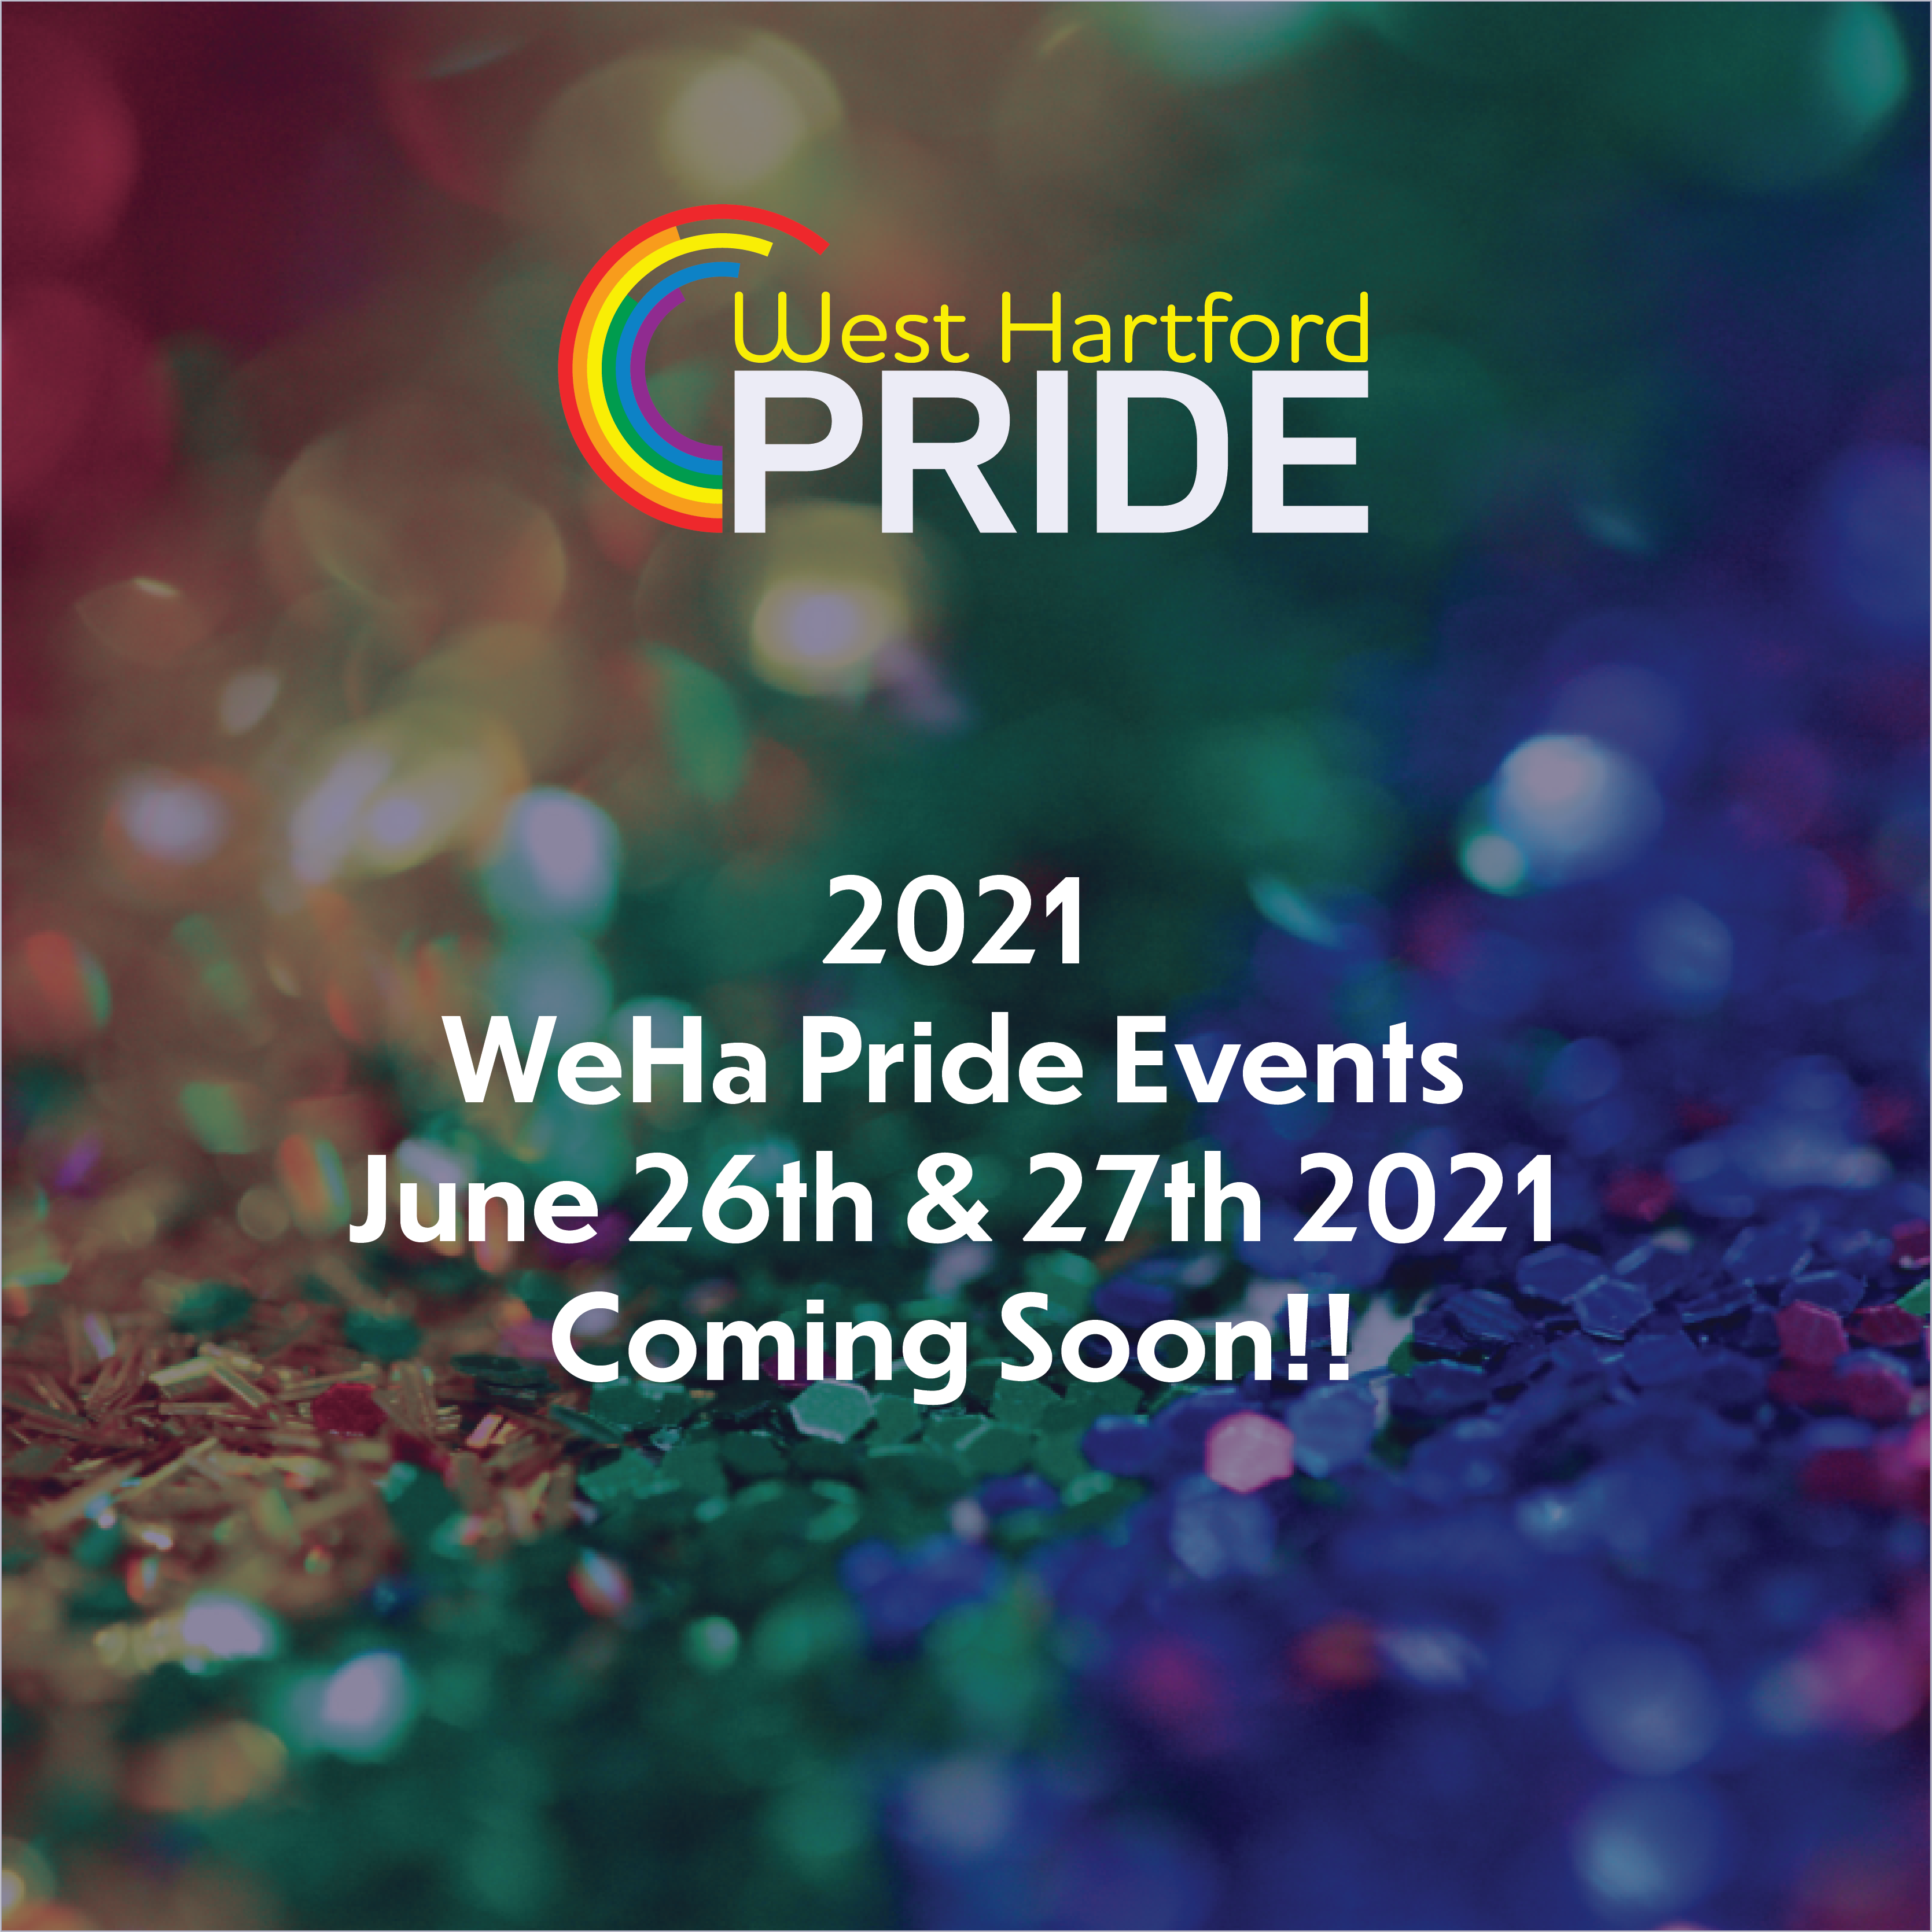 Other Pride Events Coming Soon!